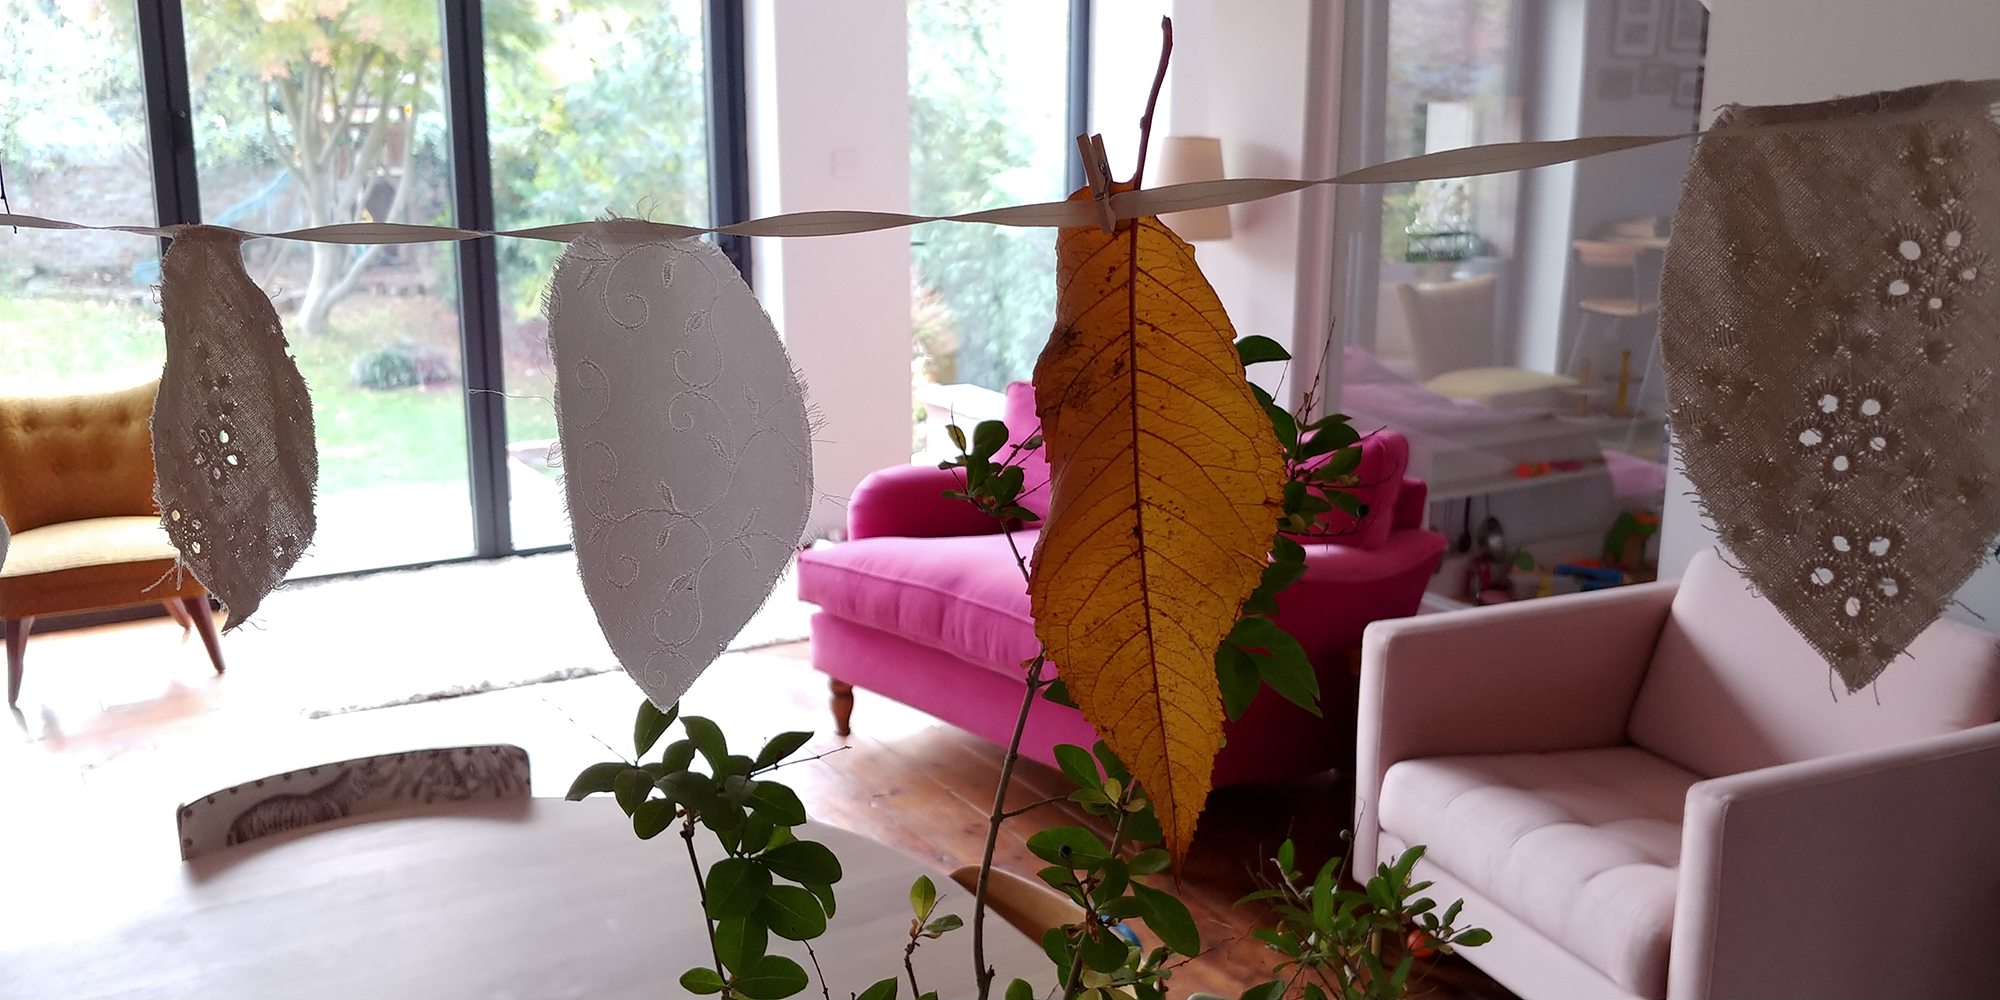 I customised our leaf-shaped handmade wedding bunting by adding leaves from the garden.